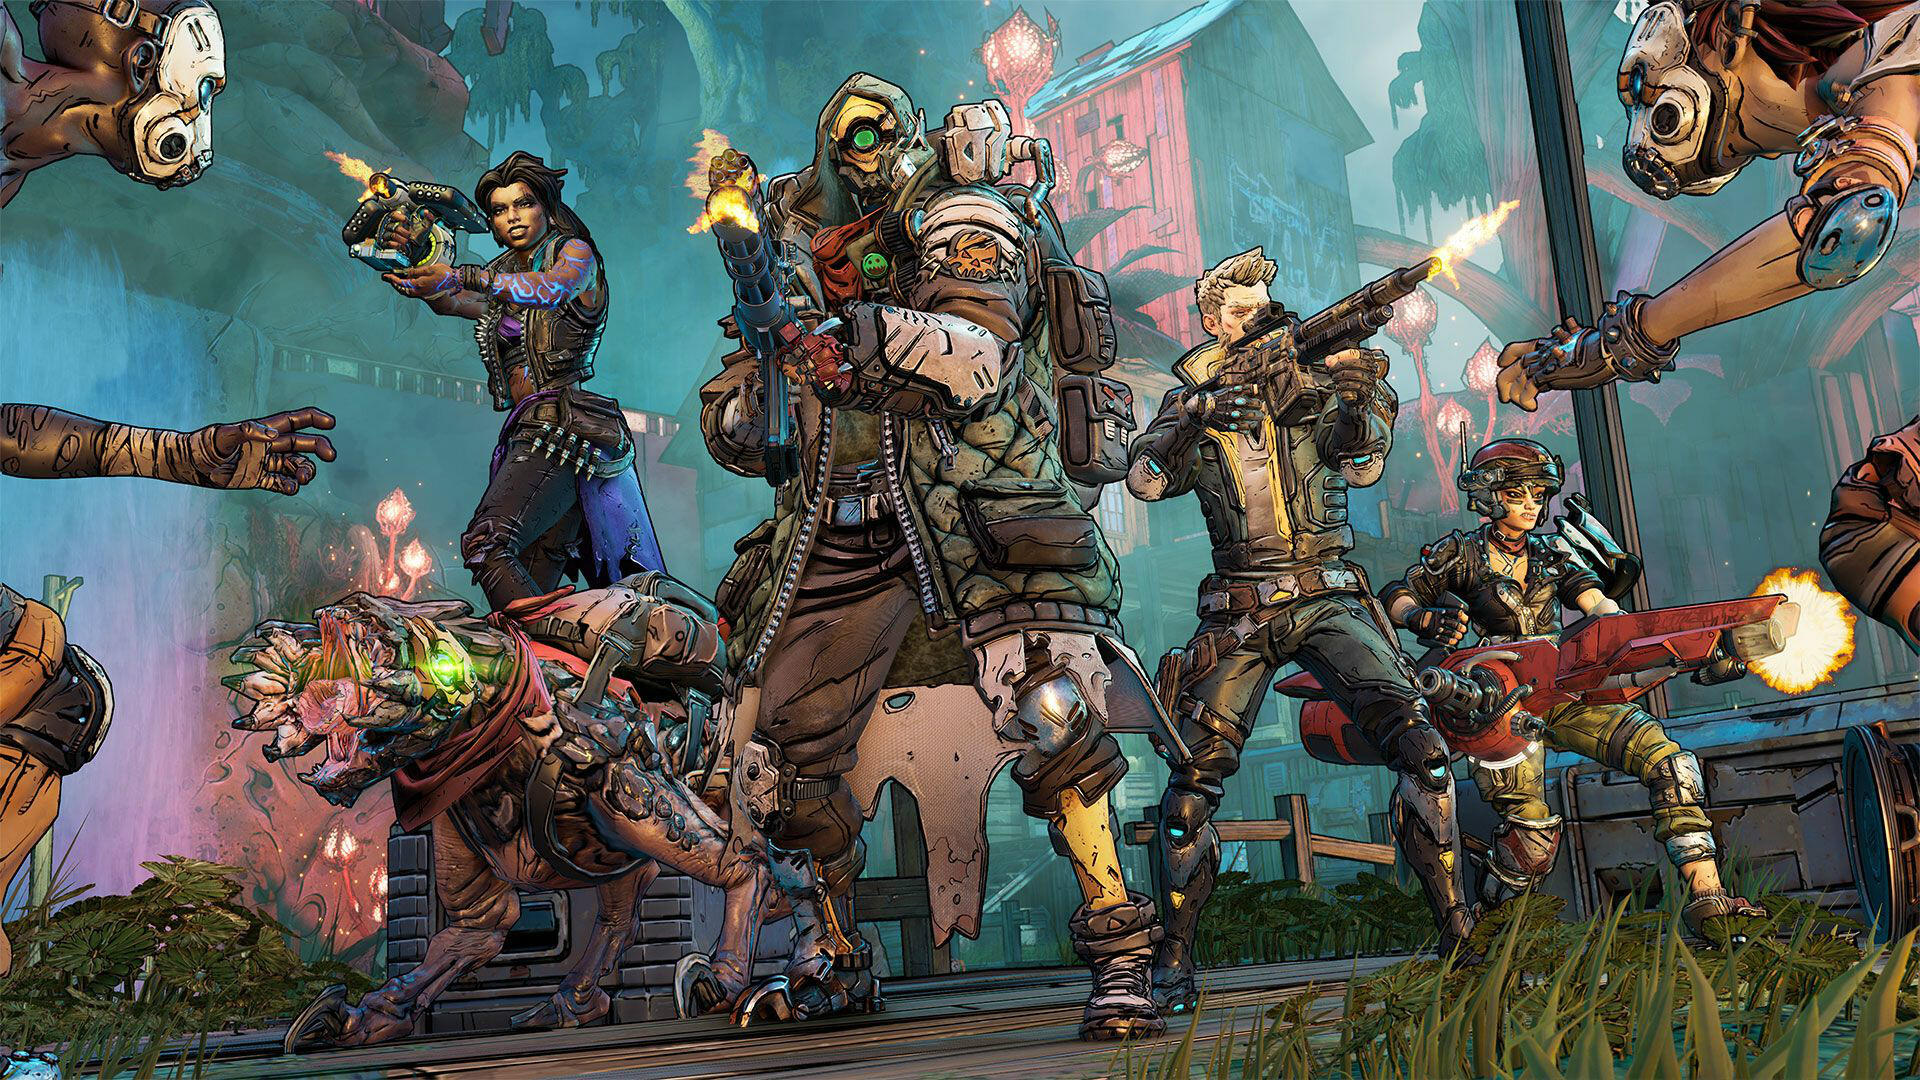 Borderlands 3: How to Unlock Artifacts